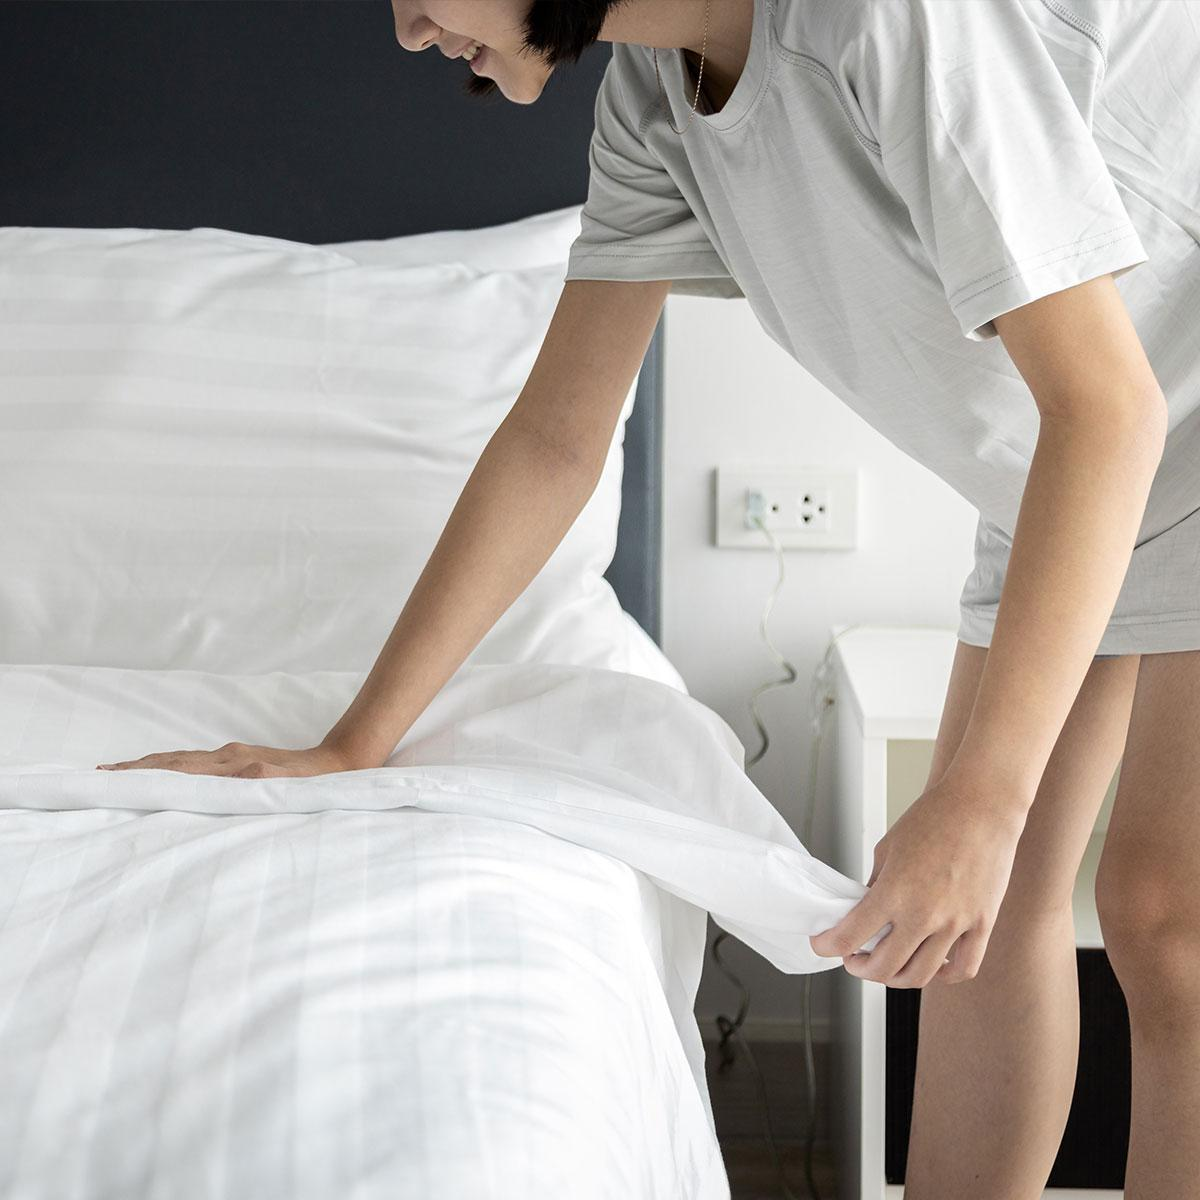 A picture containing person, indoor, bed, whiteDescription automatically generated